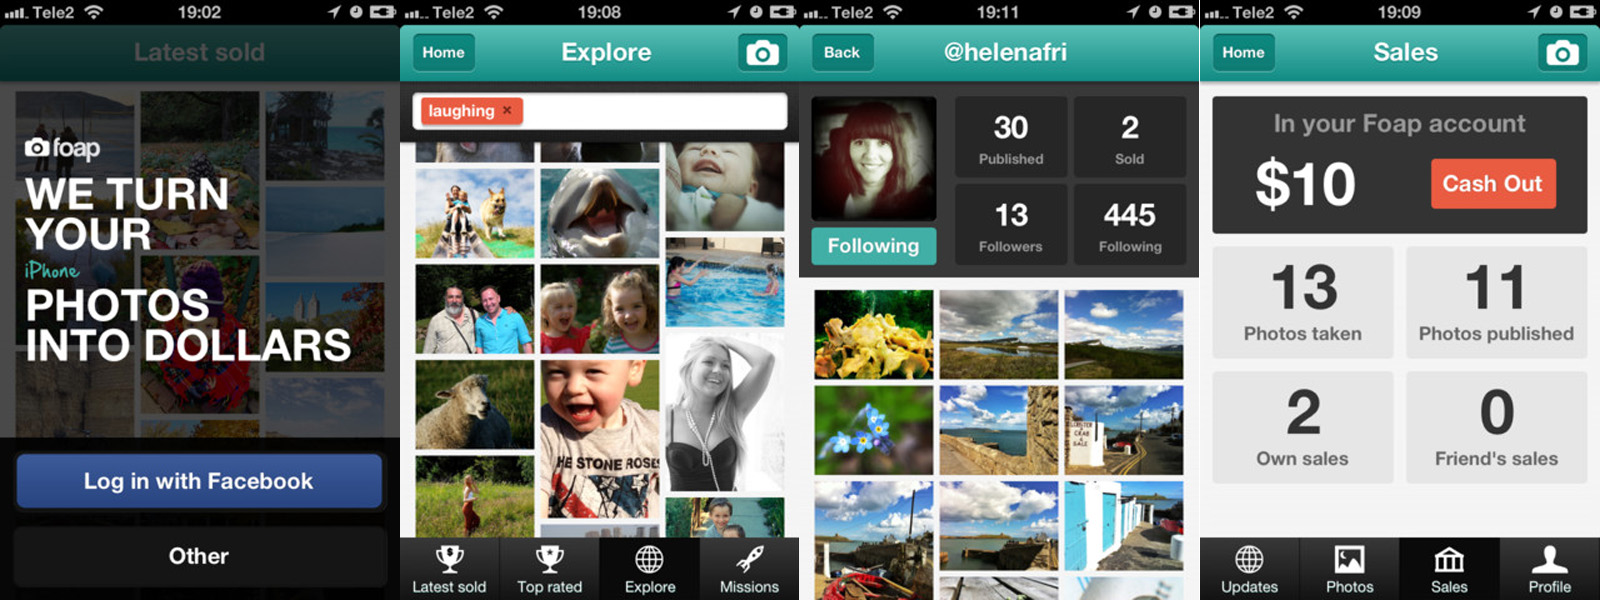 foap app screens Swedish mobile photo agency startup Foap snaps up $500k investment round